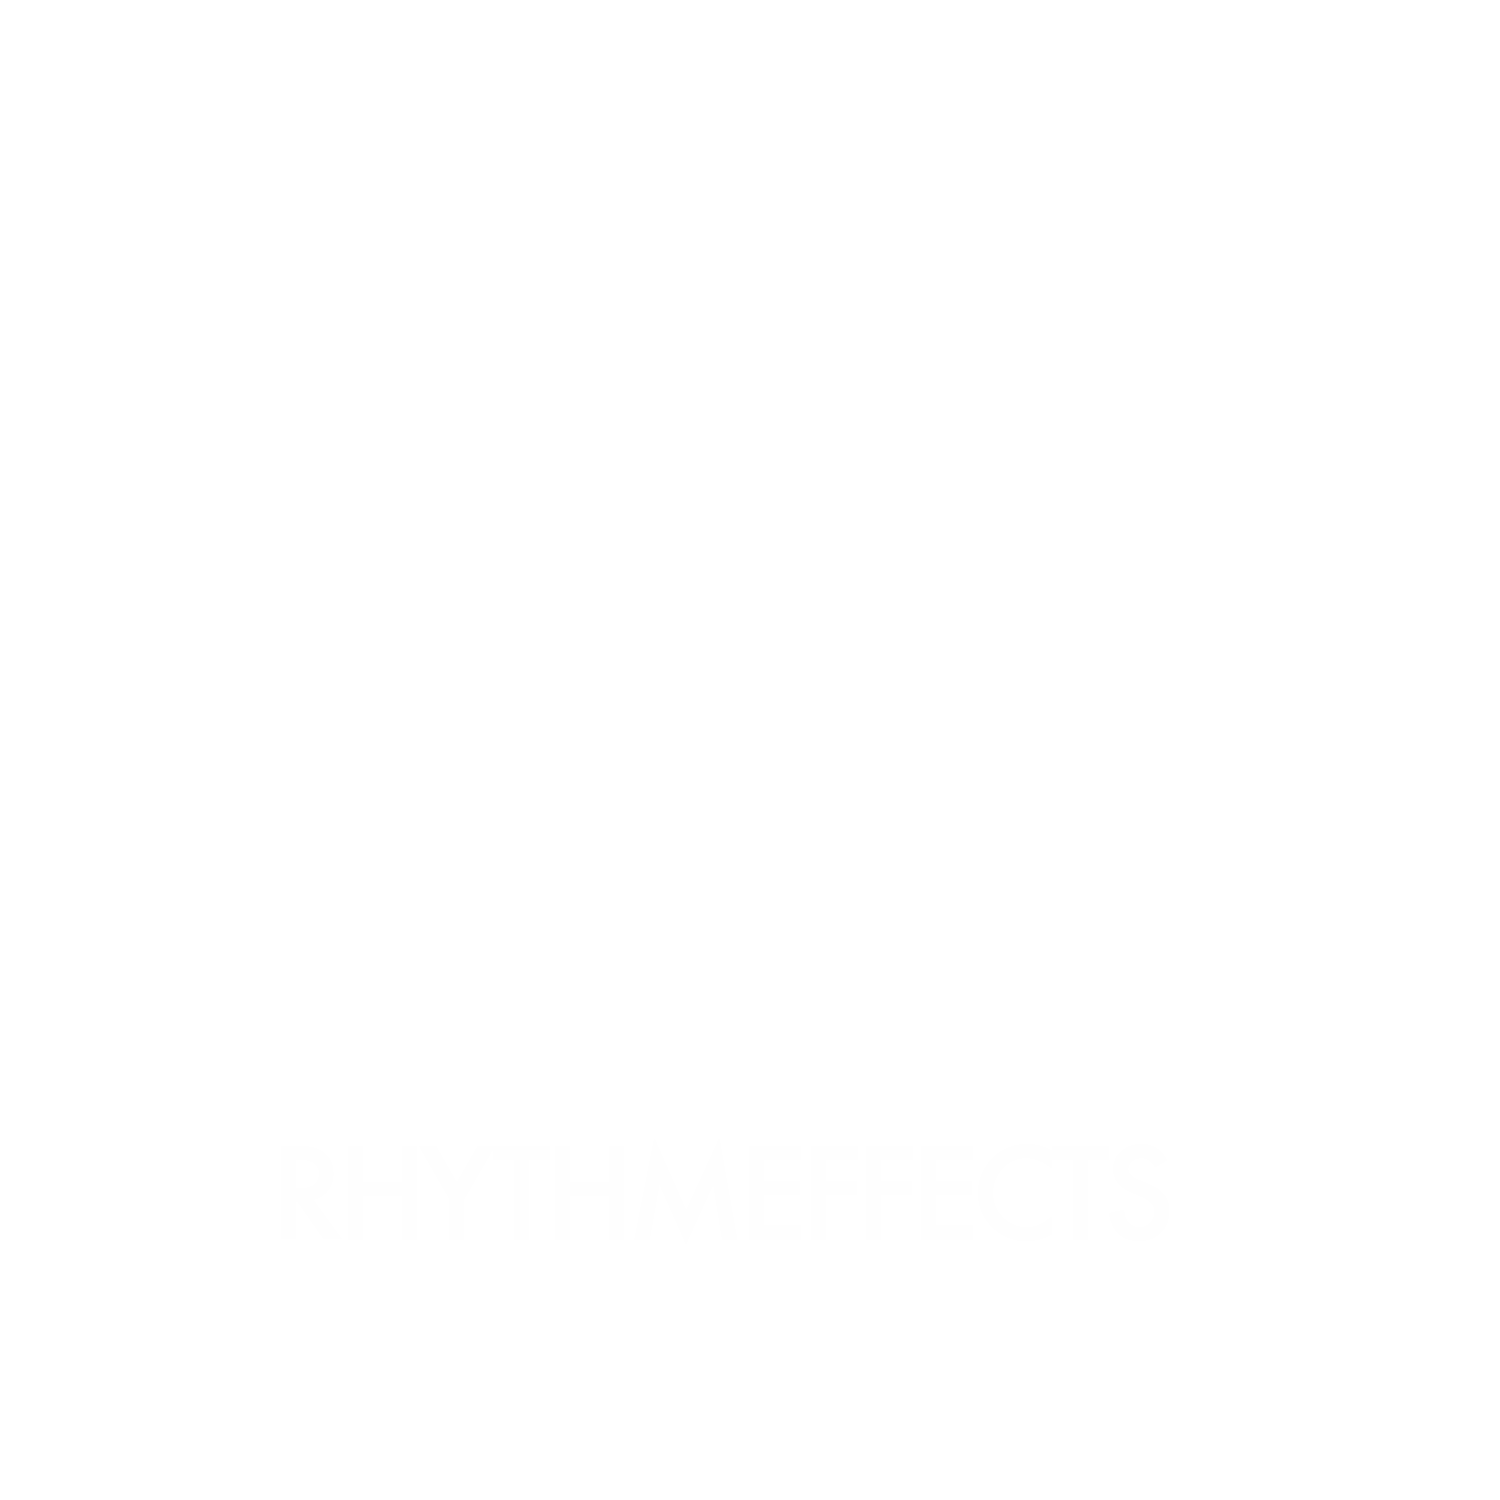 RhythmEffects